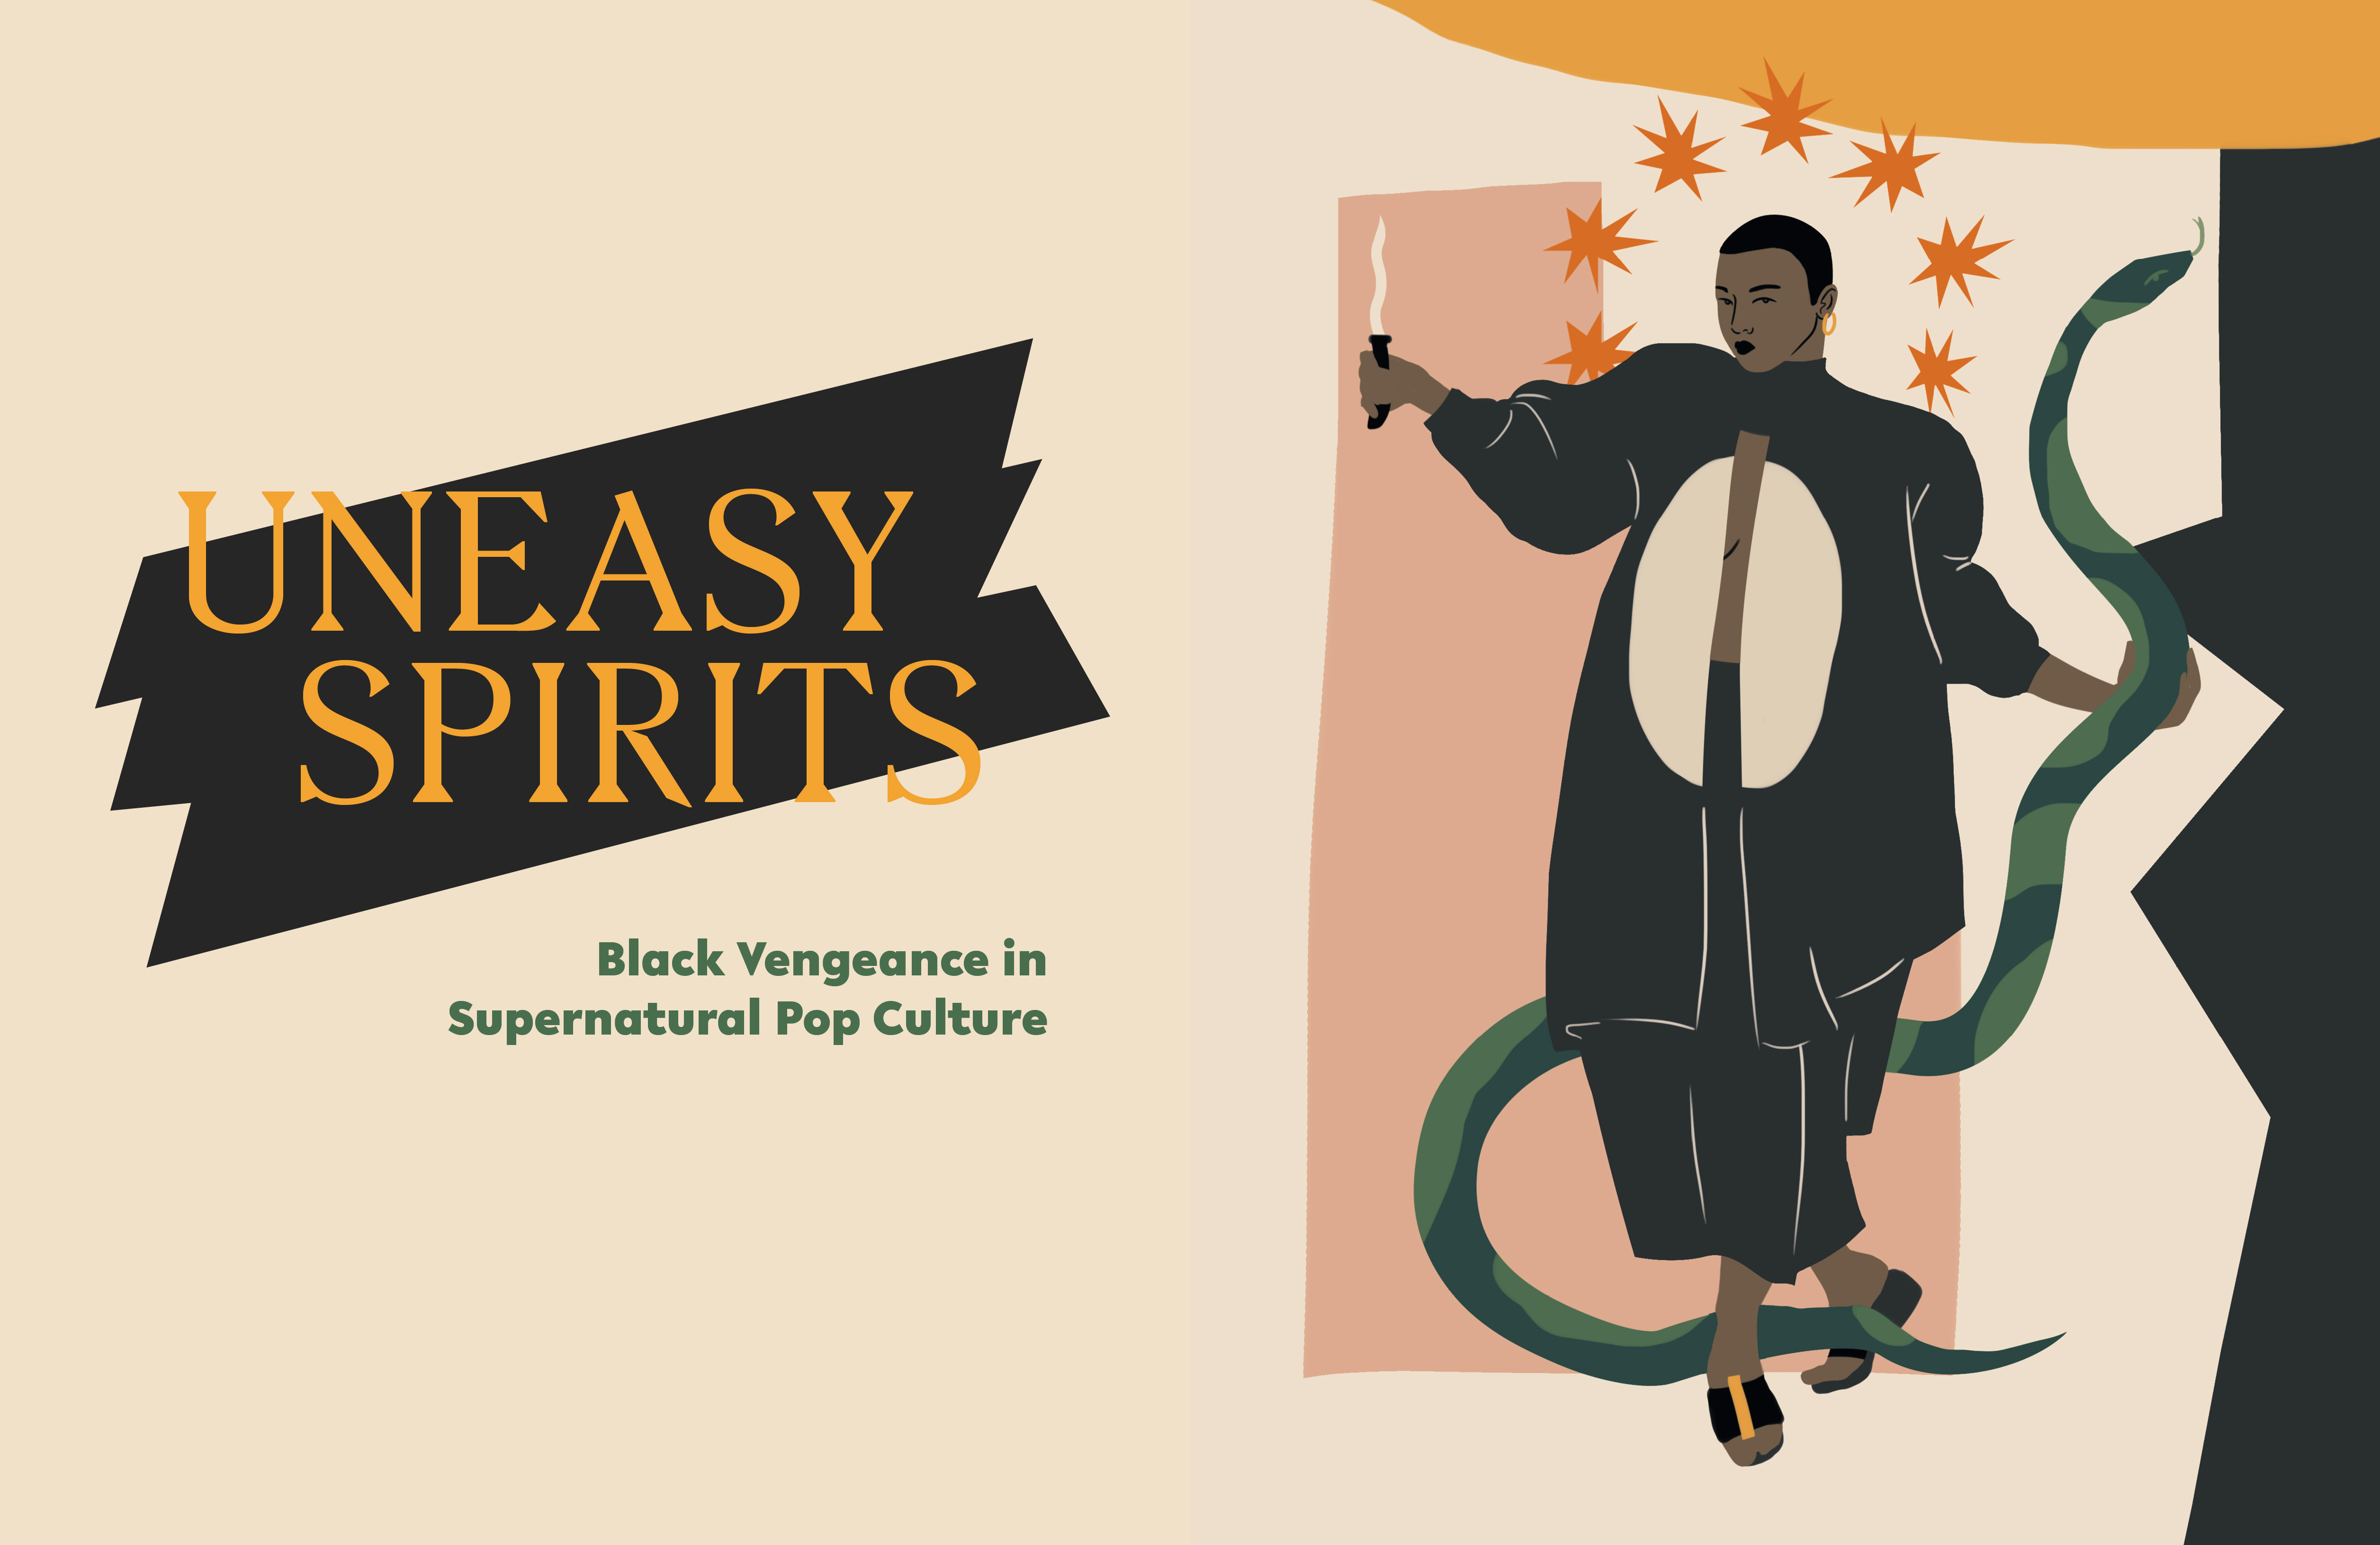 Uneasy Spirits header image of a Black woman in oversized clothing holding a serpent in her left hand and a dagger with a star halo around her head